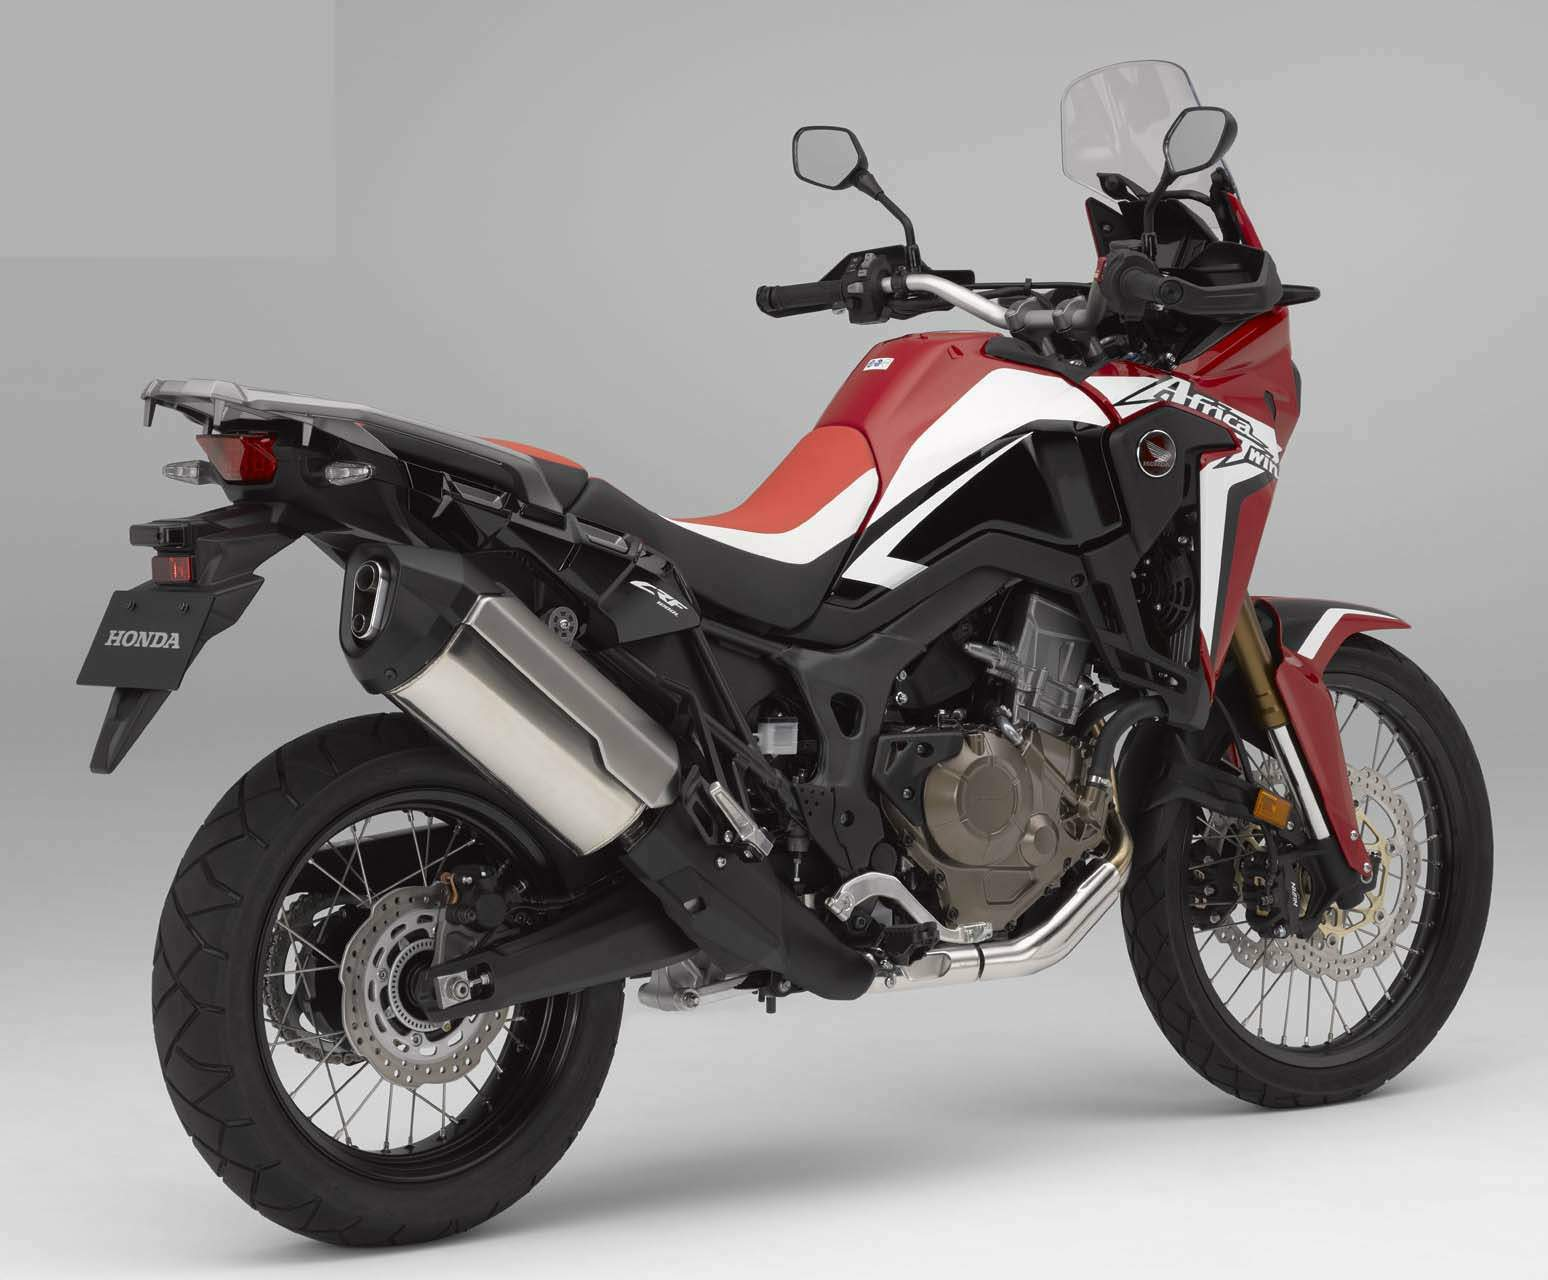 Honda CRF 1000L Africa Twin  				/ DCT For Sale Specifications, Price and Images